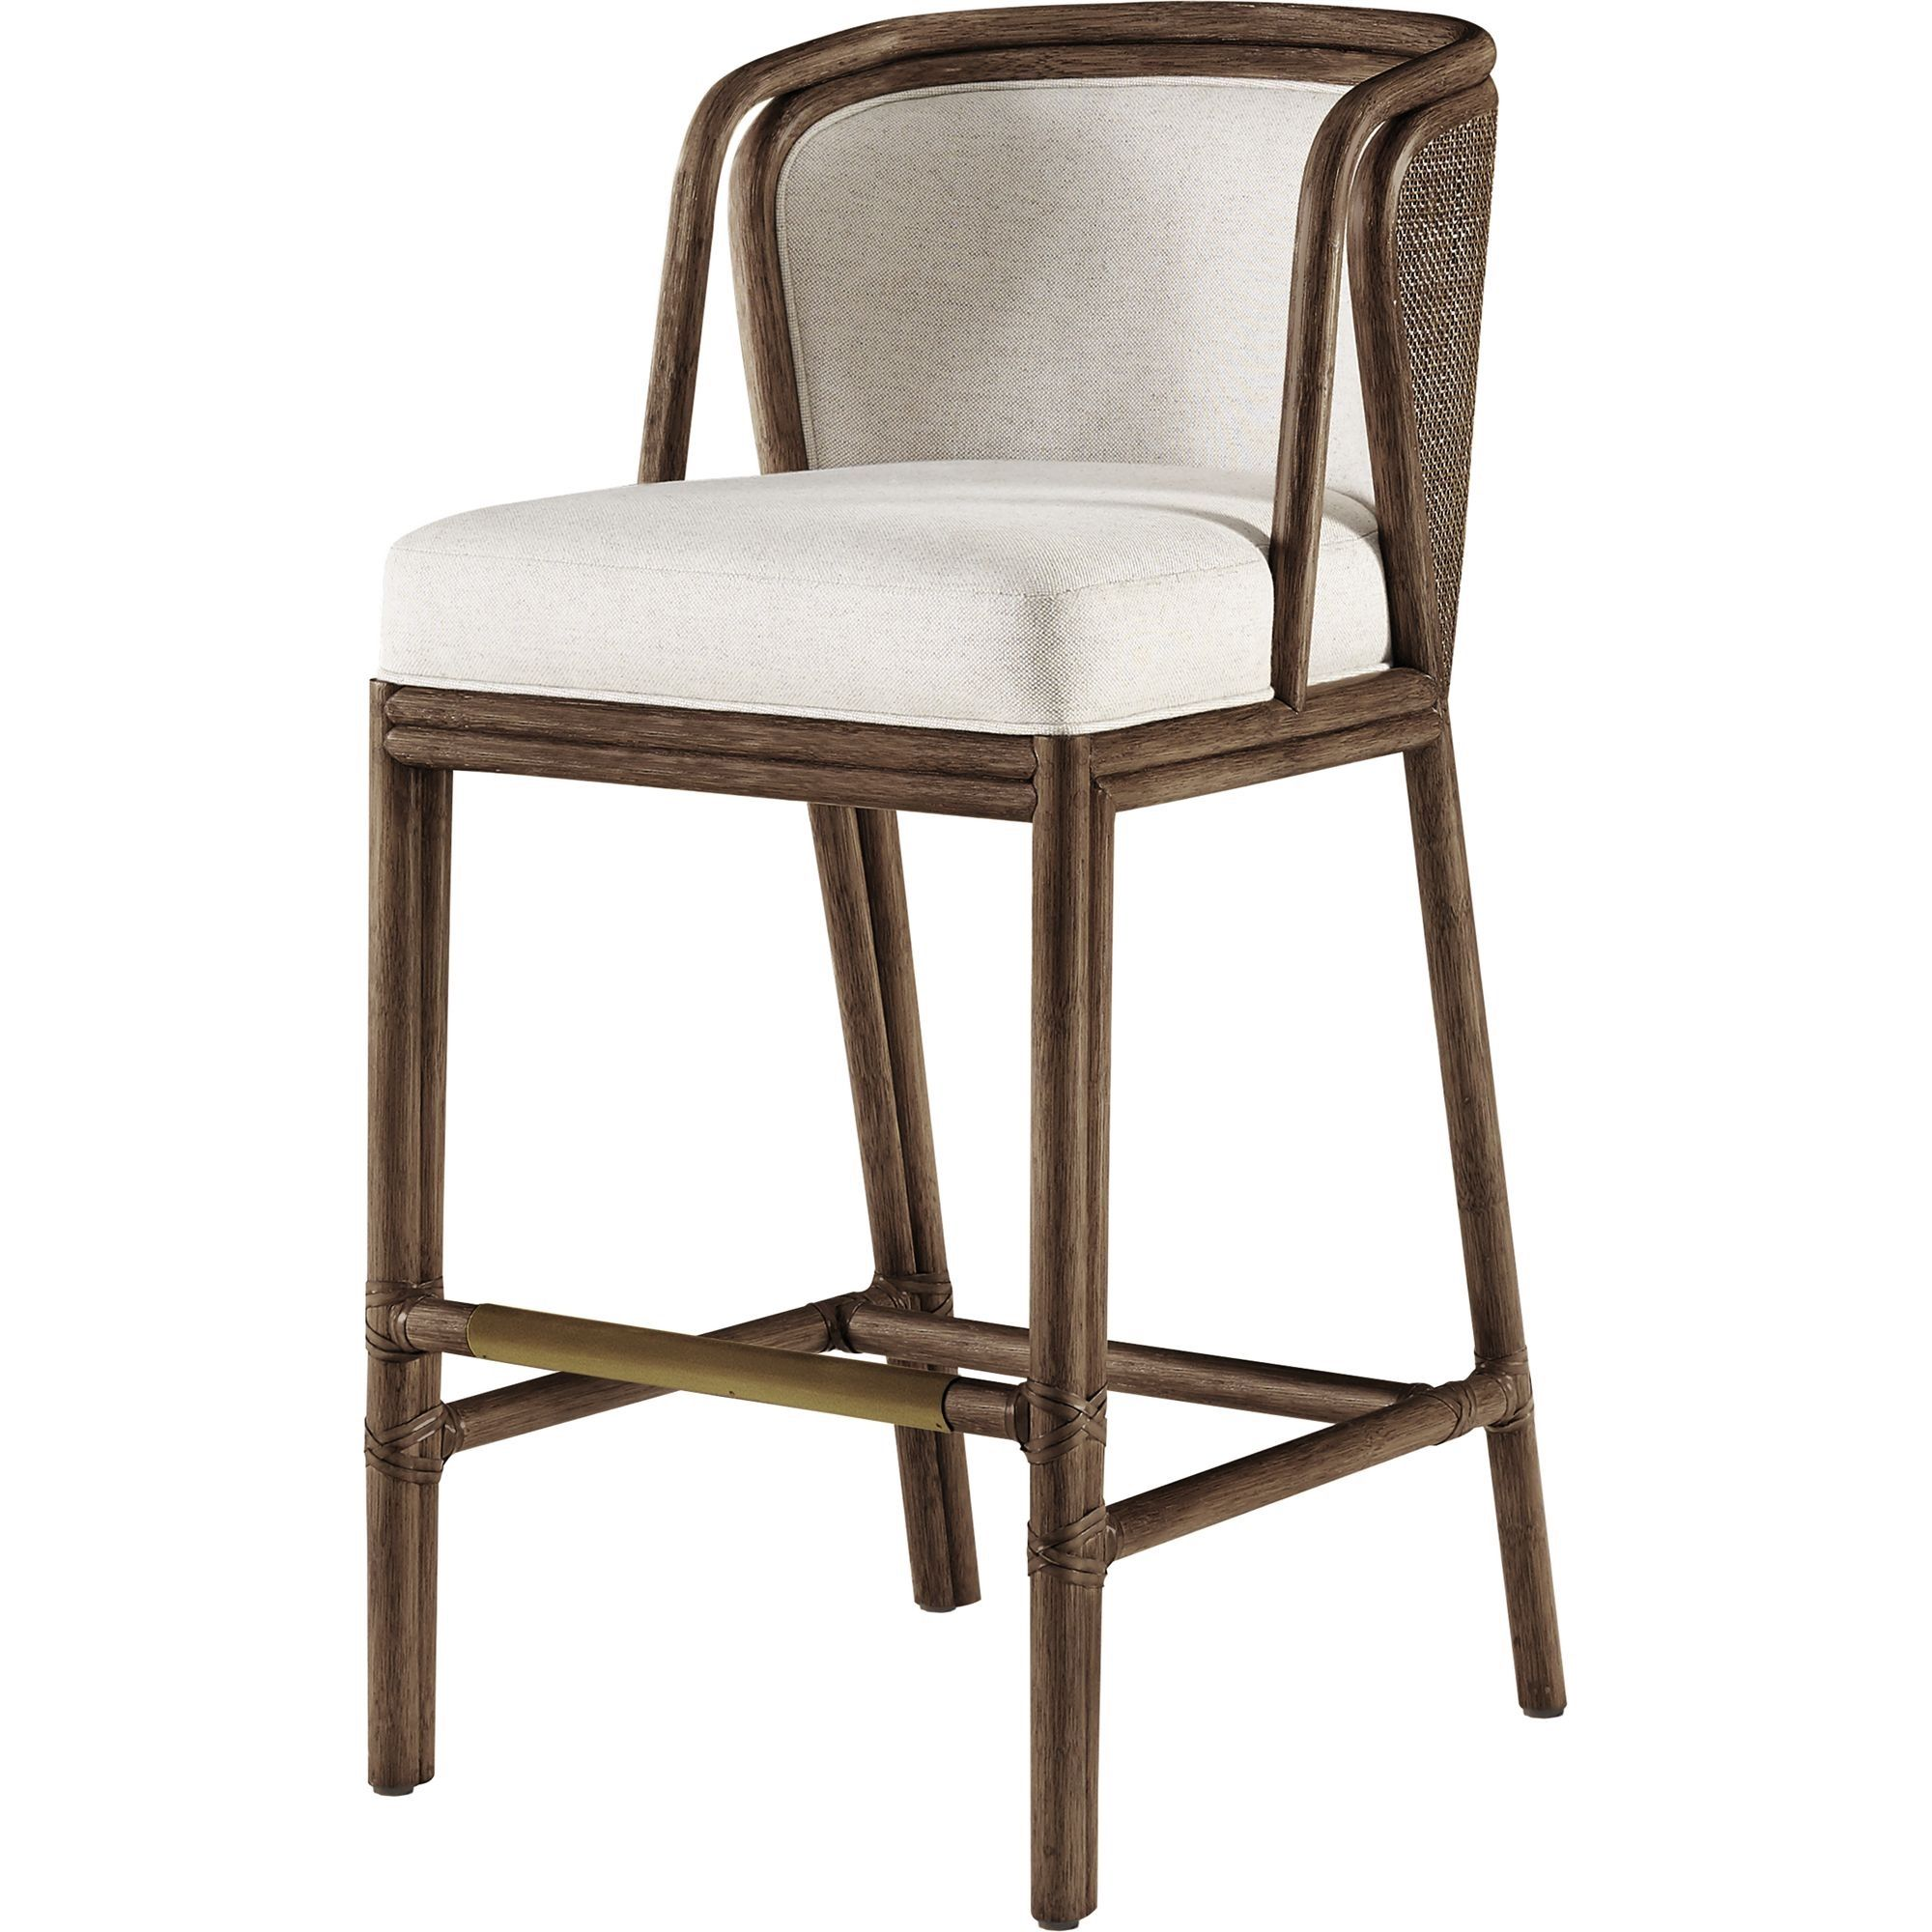 Barbara Barry Ojai Counter Stool By Mcguire Furniture Made To Order Designer From Dering Hall S Collection Of Contemporary Barstools